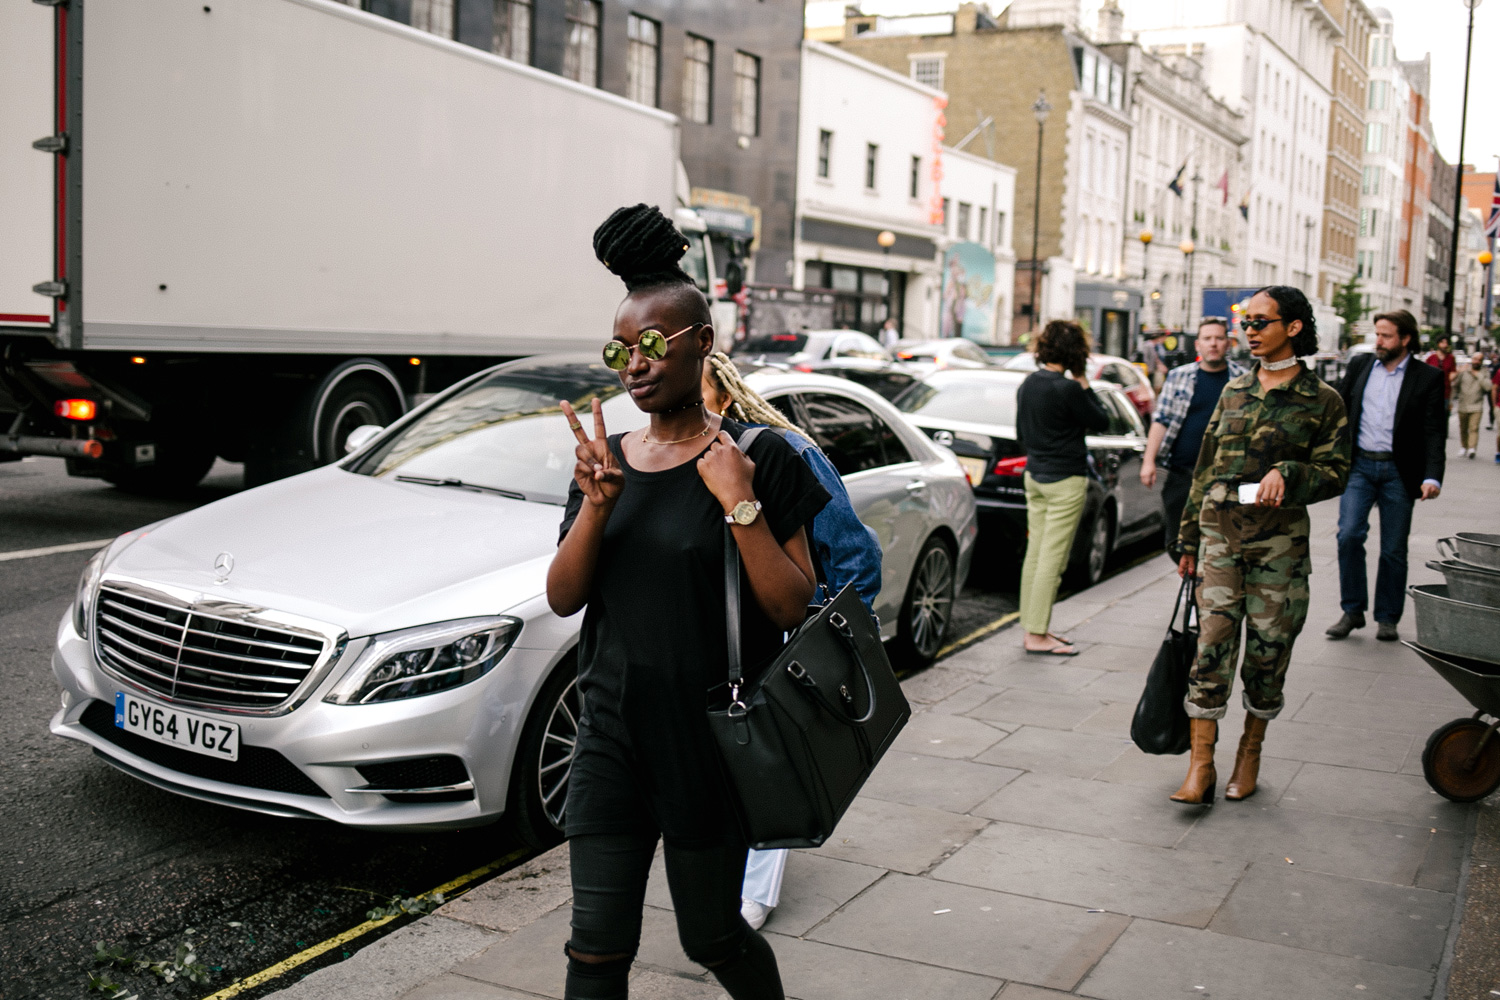 088-Shoreditch-Streetstyle.jpg